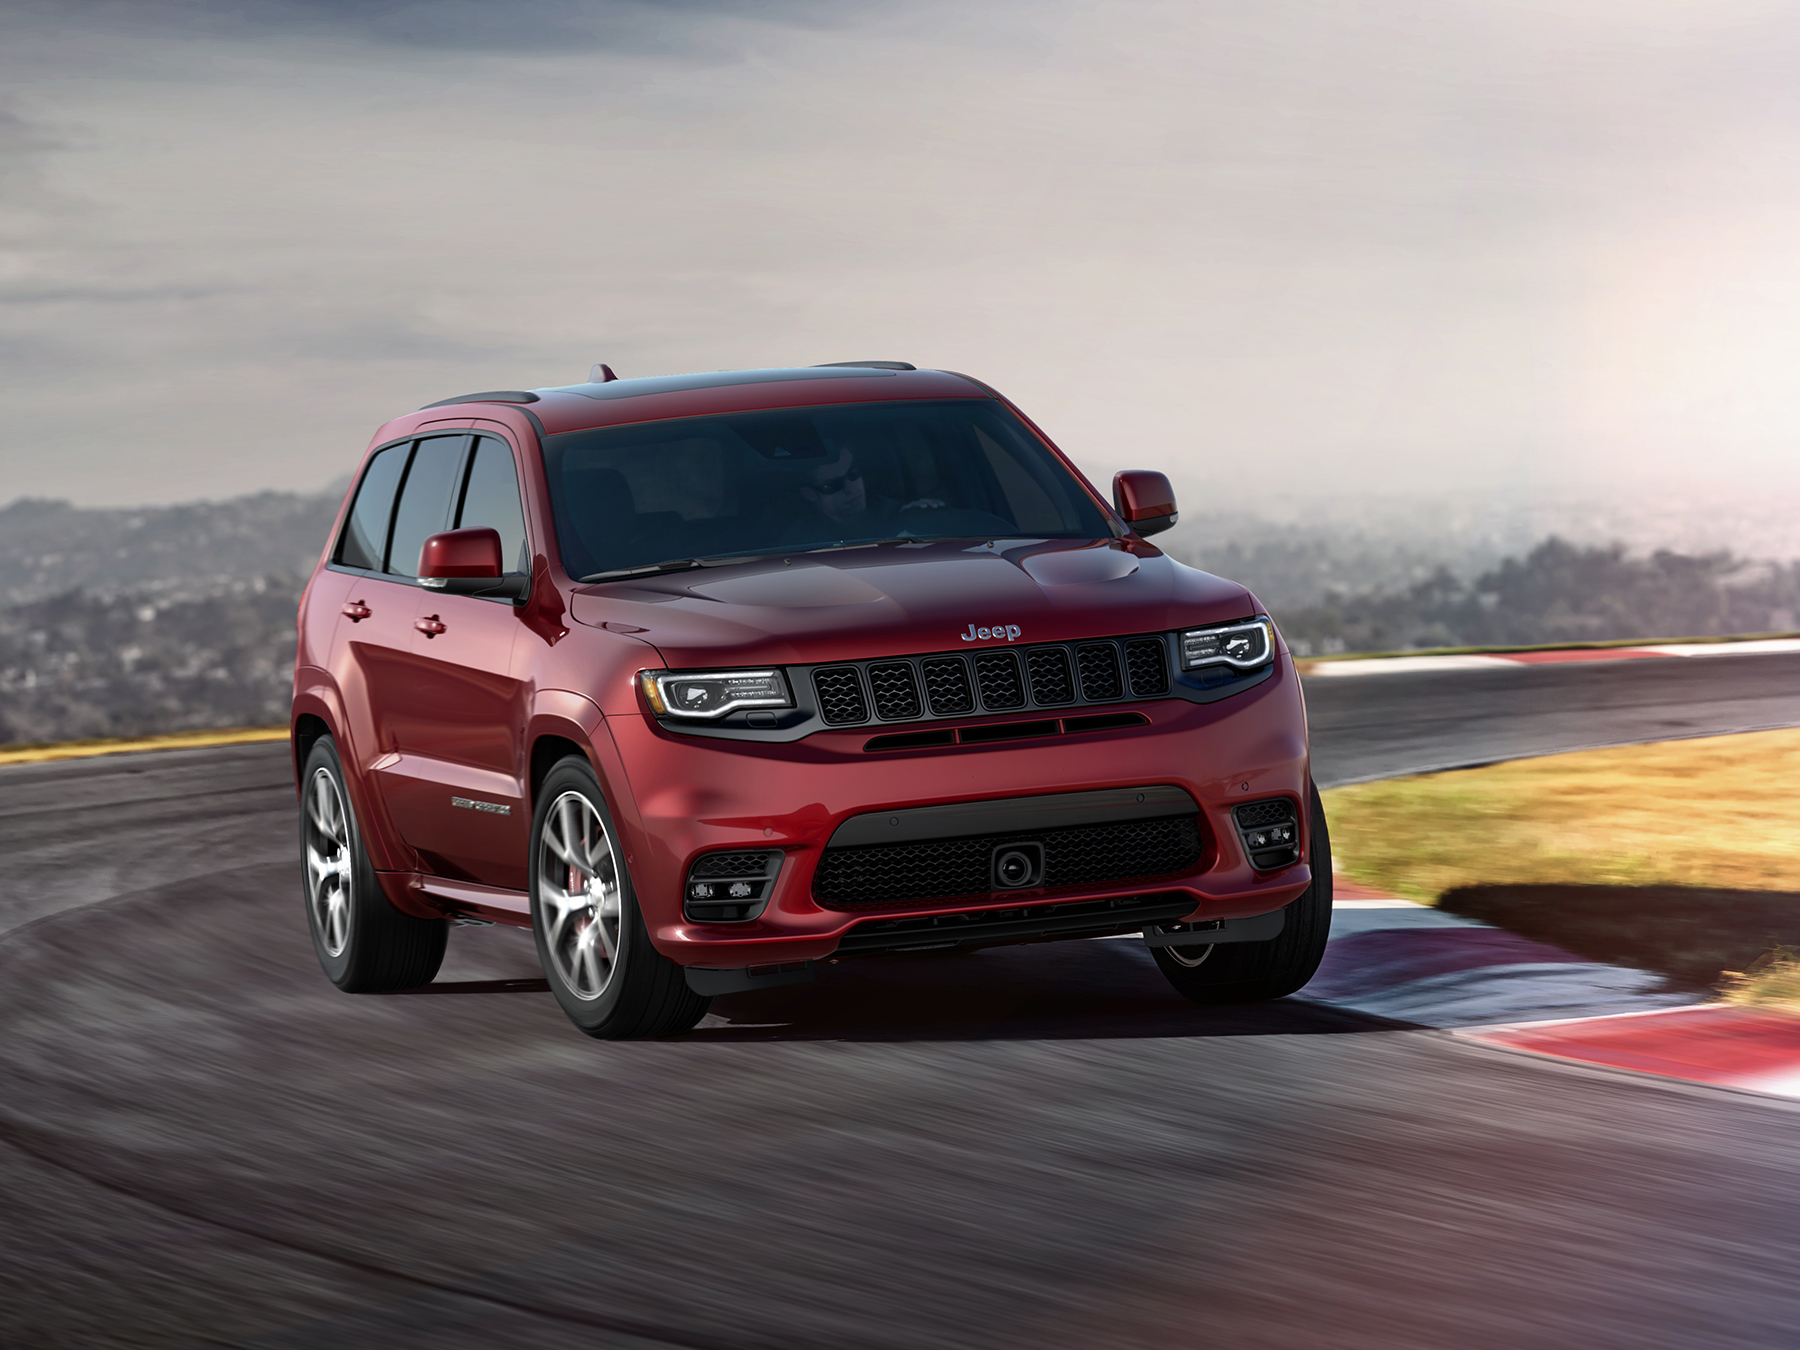 Red Jeep driving on a track